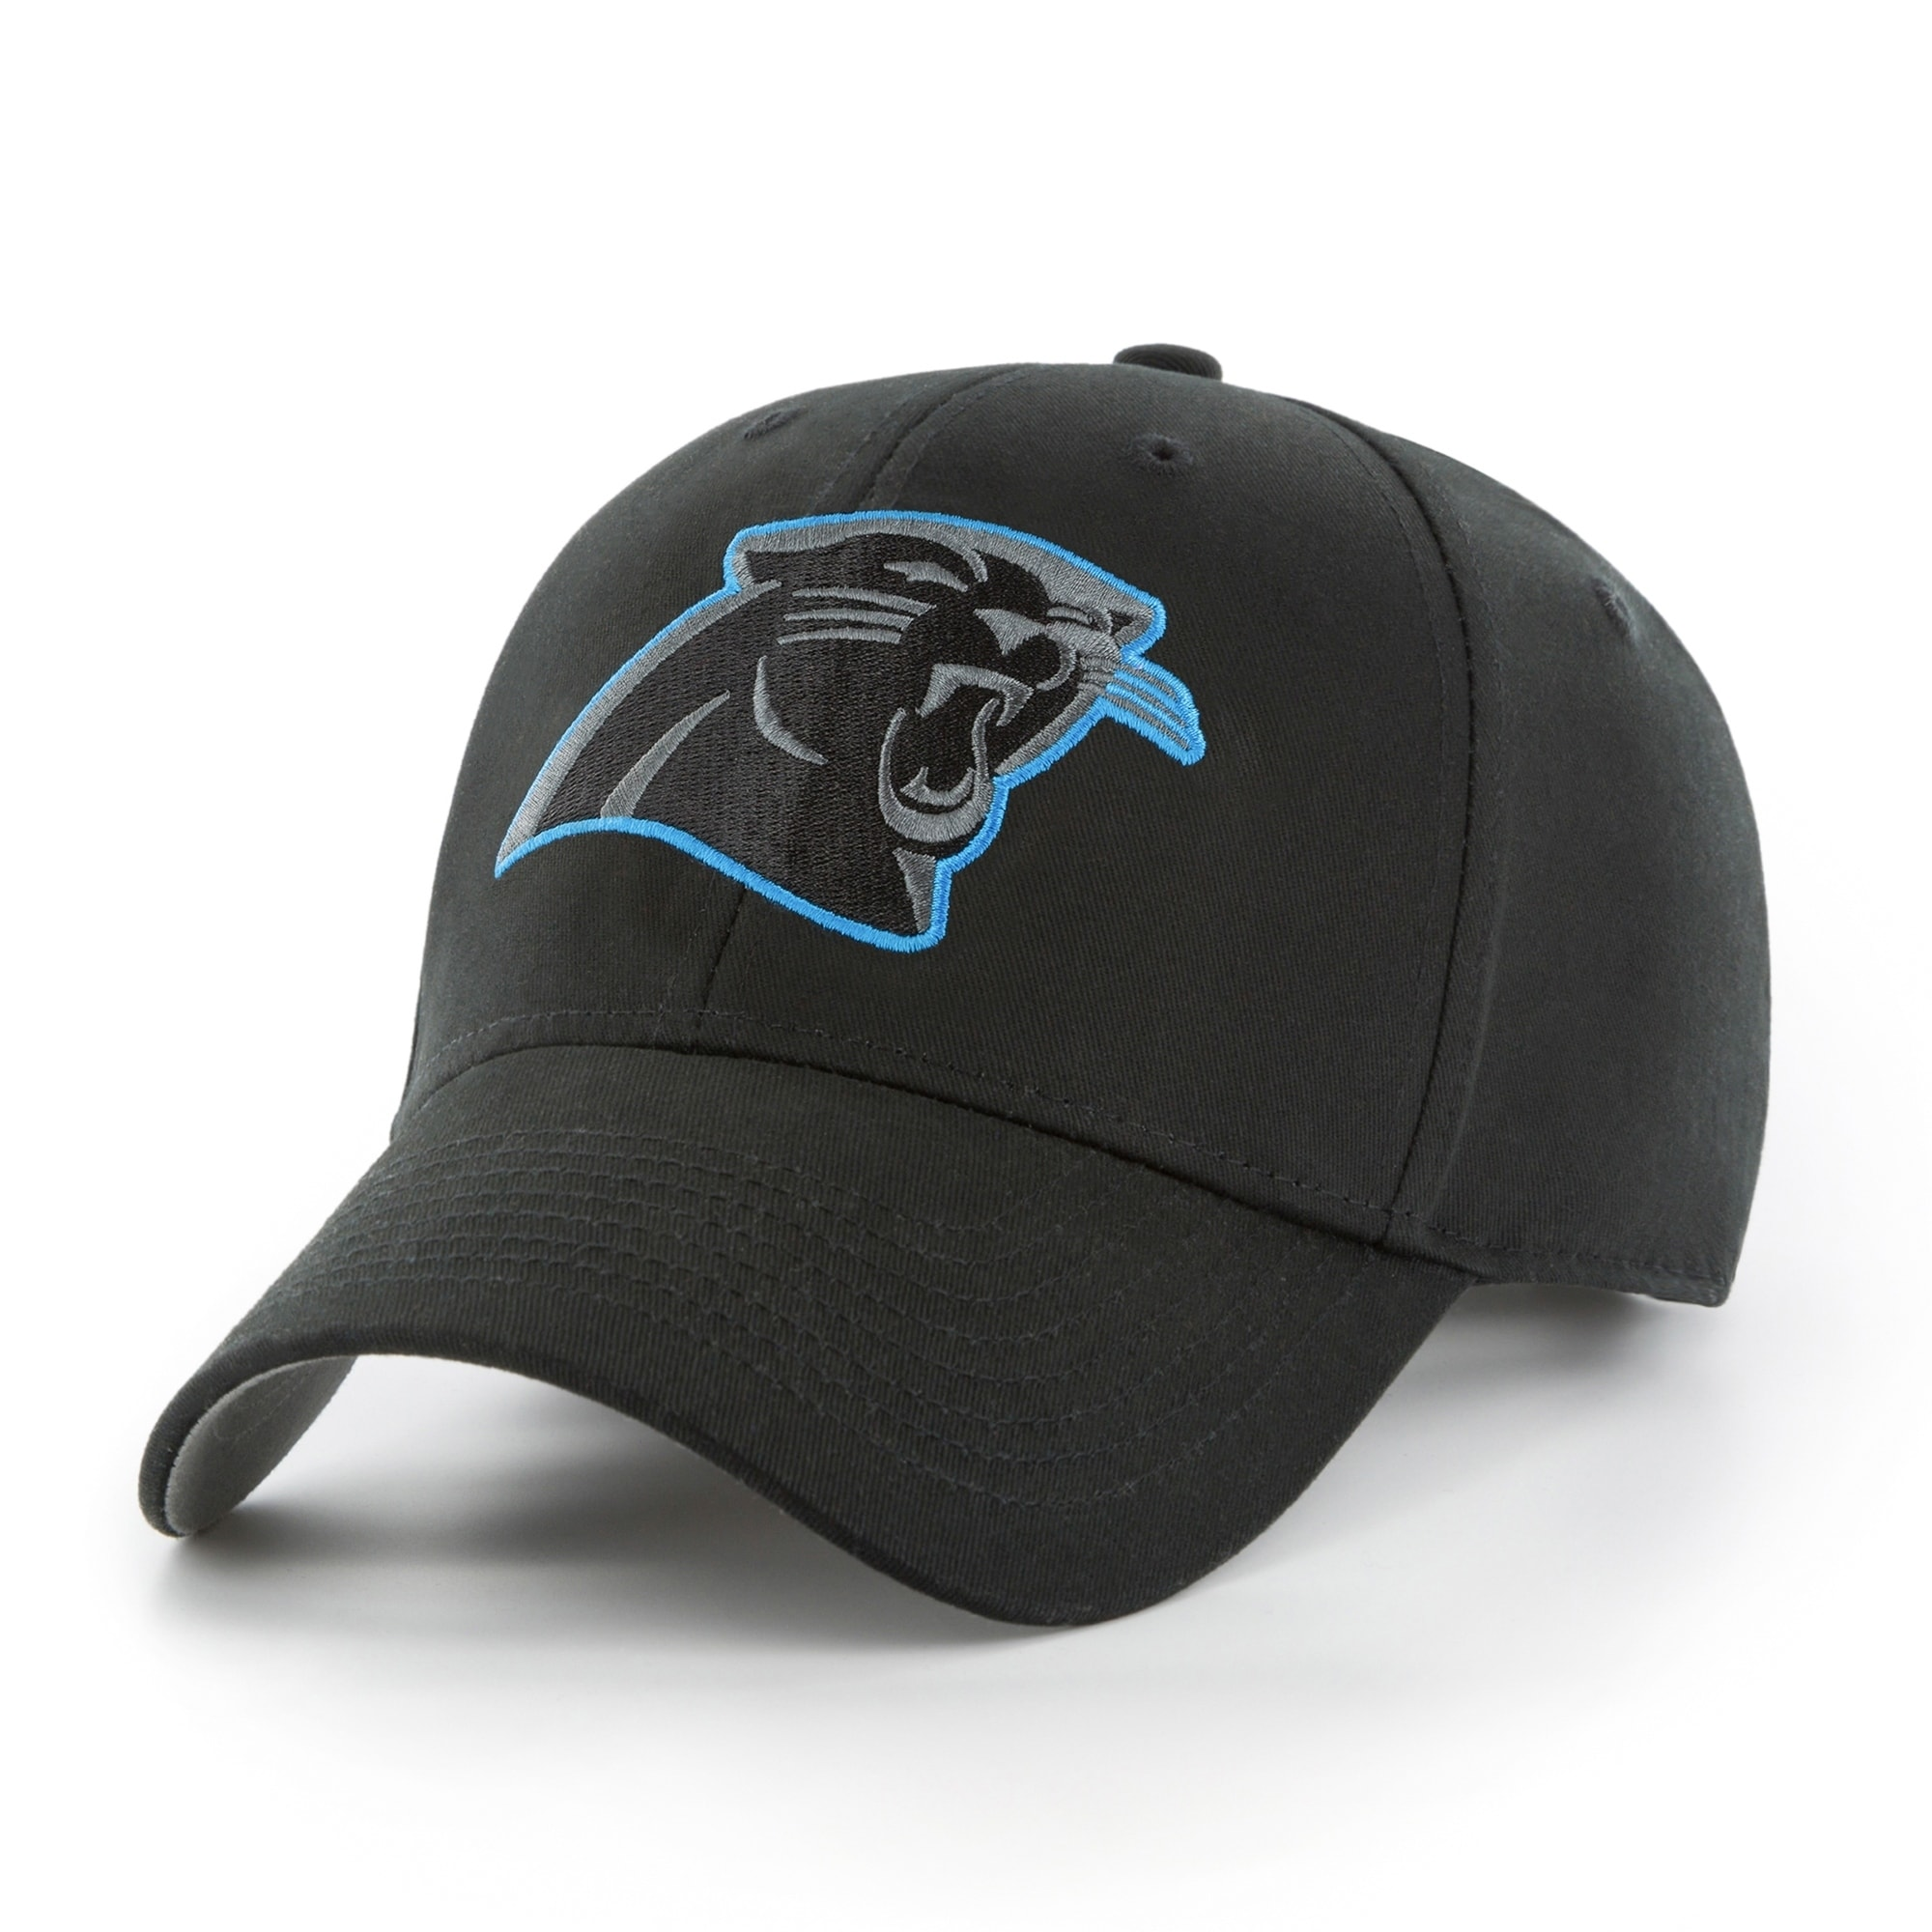 timeless design 16ed4 1ed8e ... sale details about nfl carolina panthers black classic adjustable hat  55bf8 6cae0